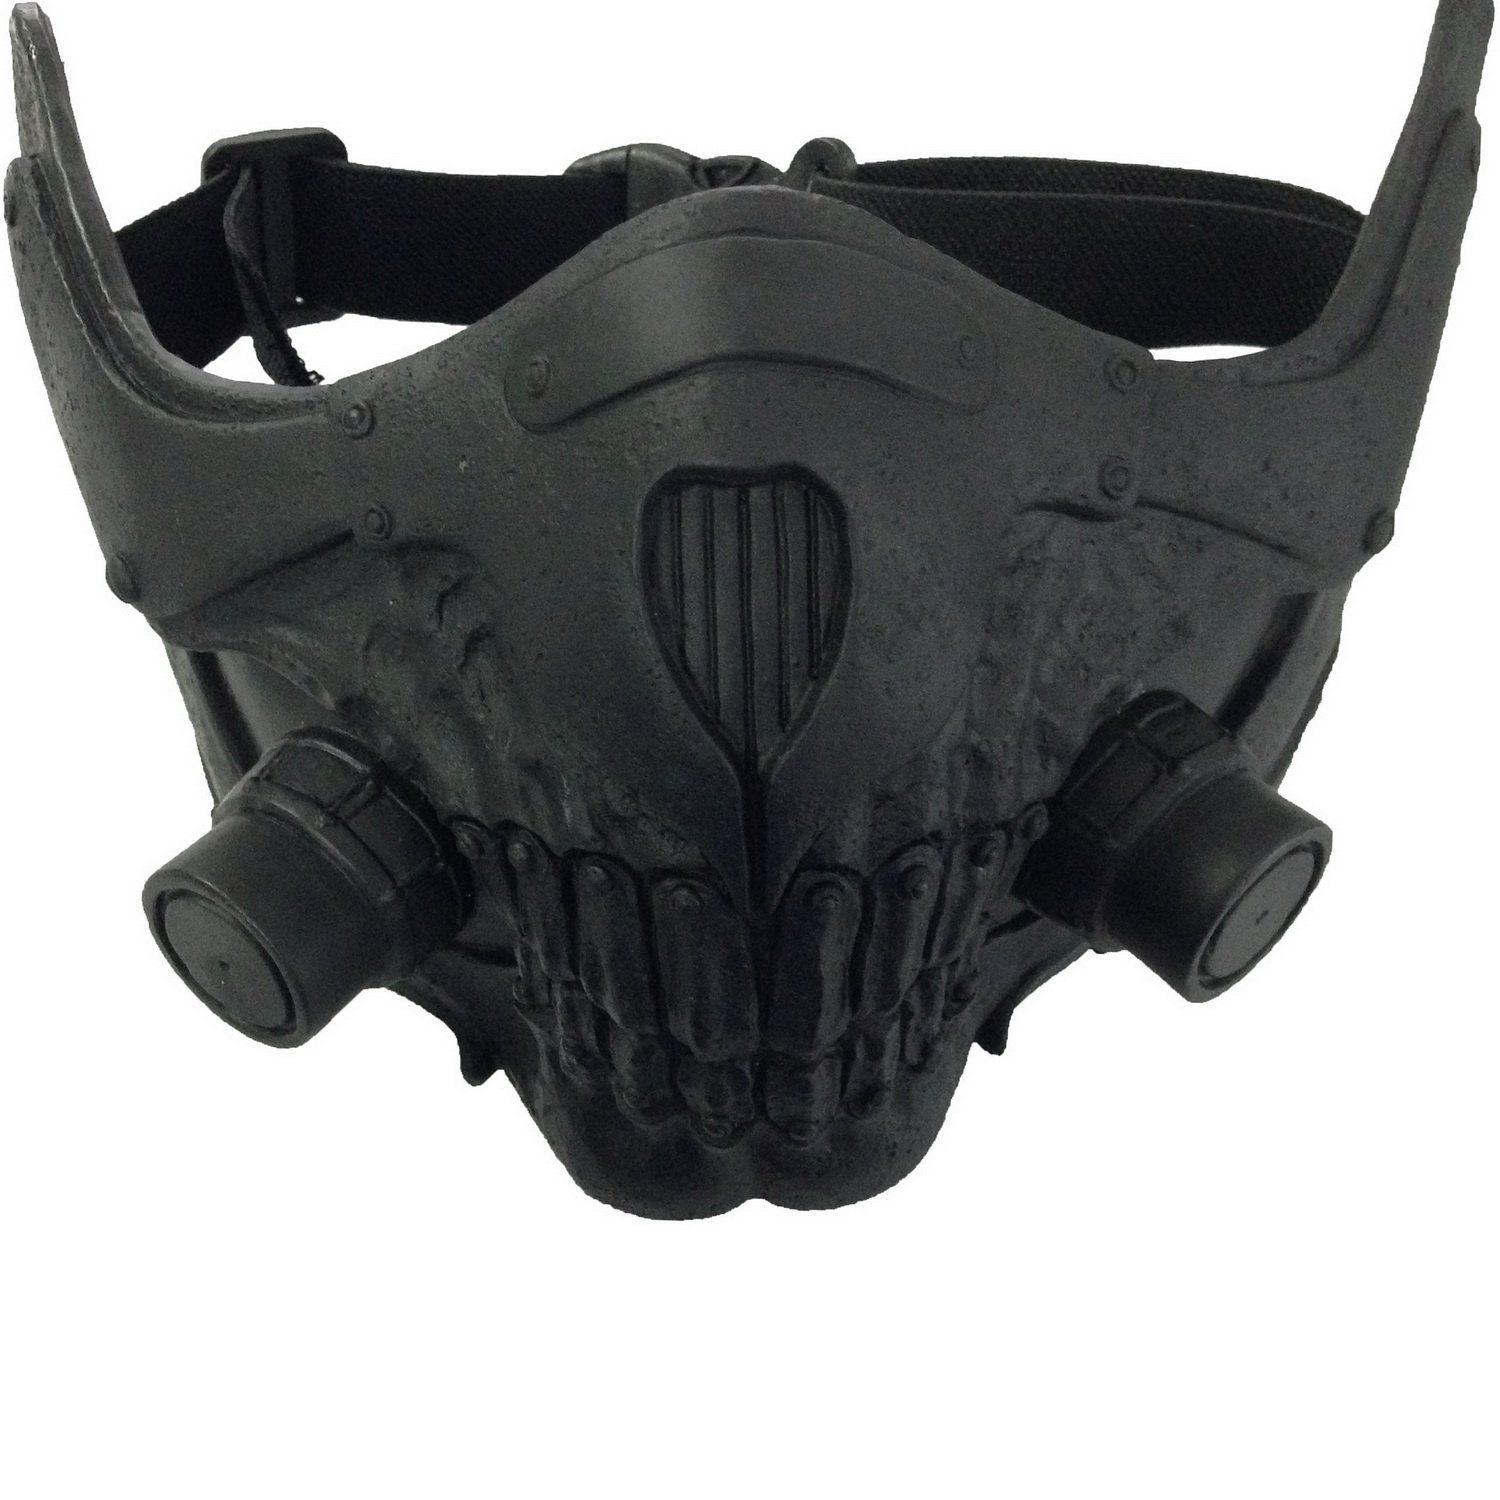 Amazon mad joe max mask cosplay cool pvc half face gas mask amazon mad joe max mask cosplay cool pvc half face gas mask halloween voltagebd Images